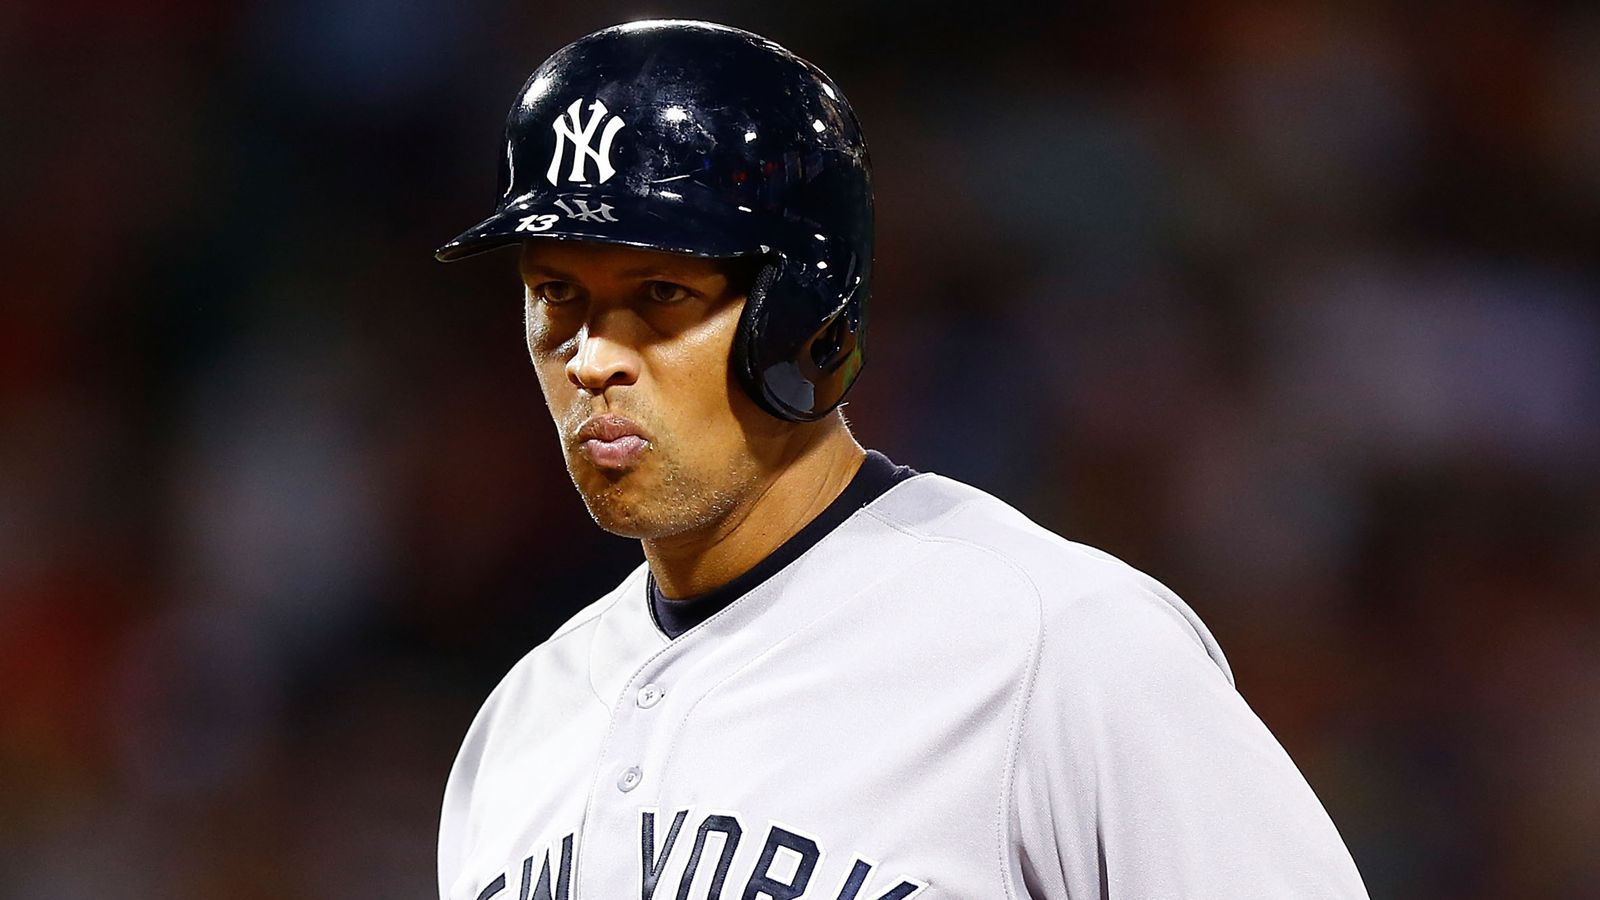 MLB willing to reveal all evidence against Alex Rodriguez ...